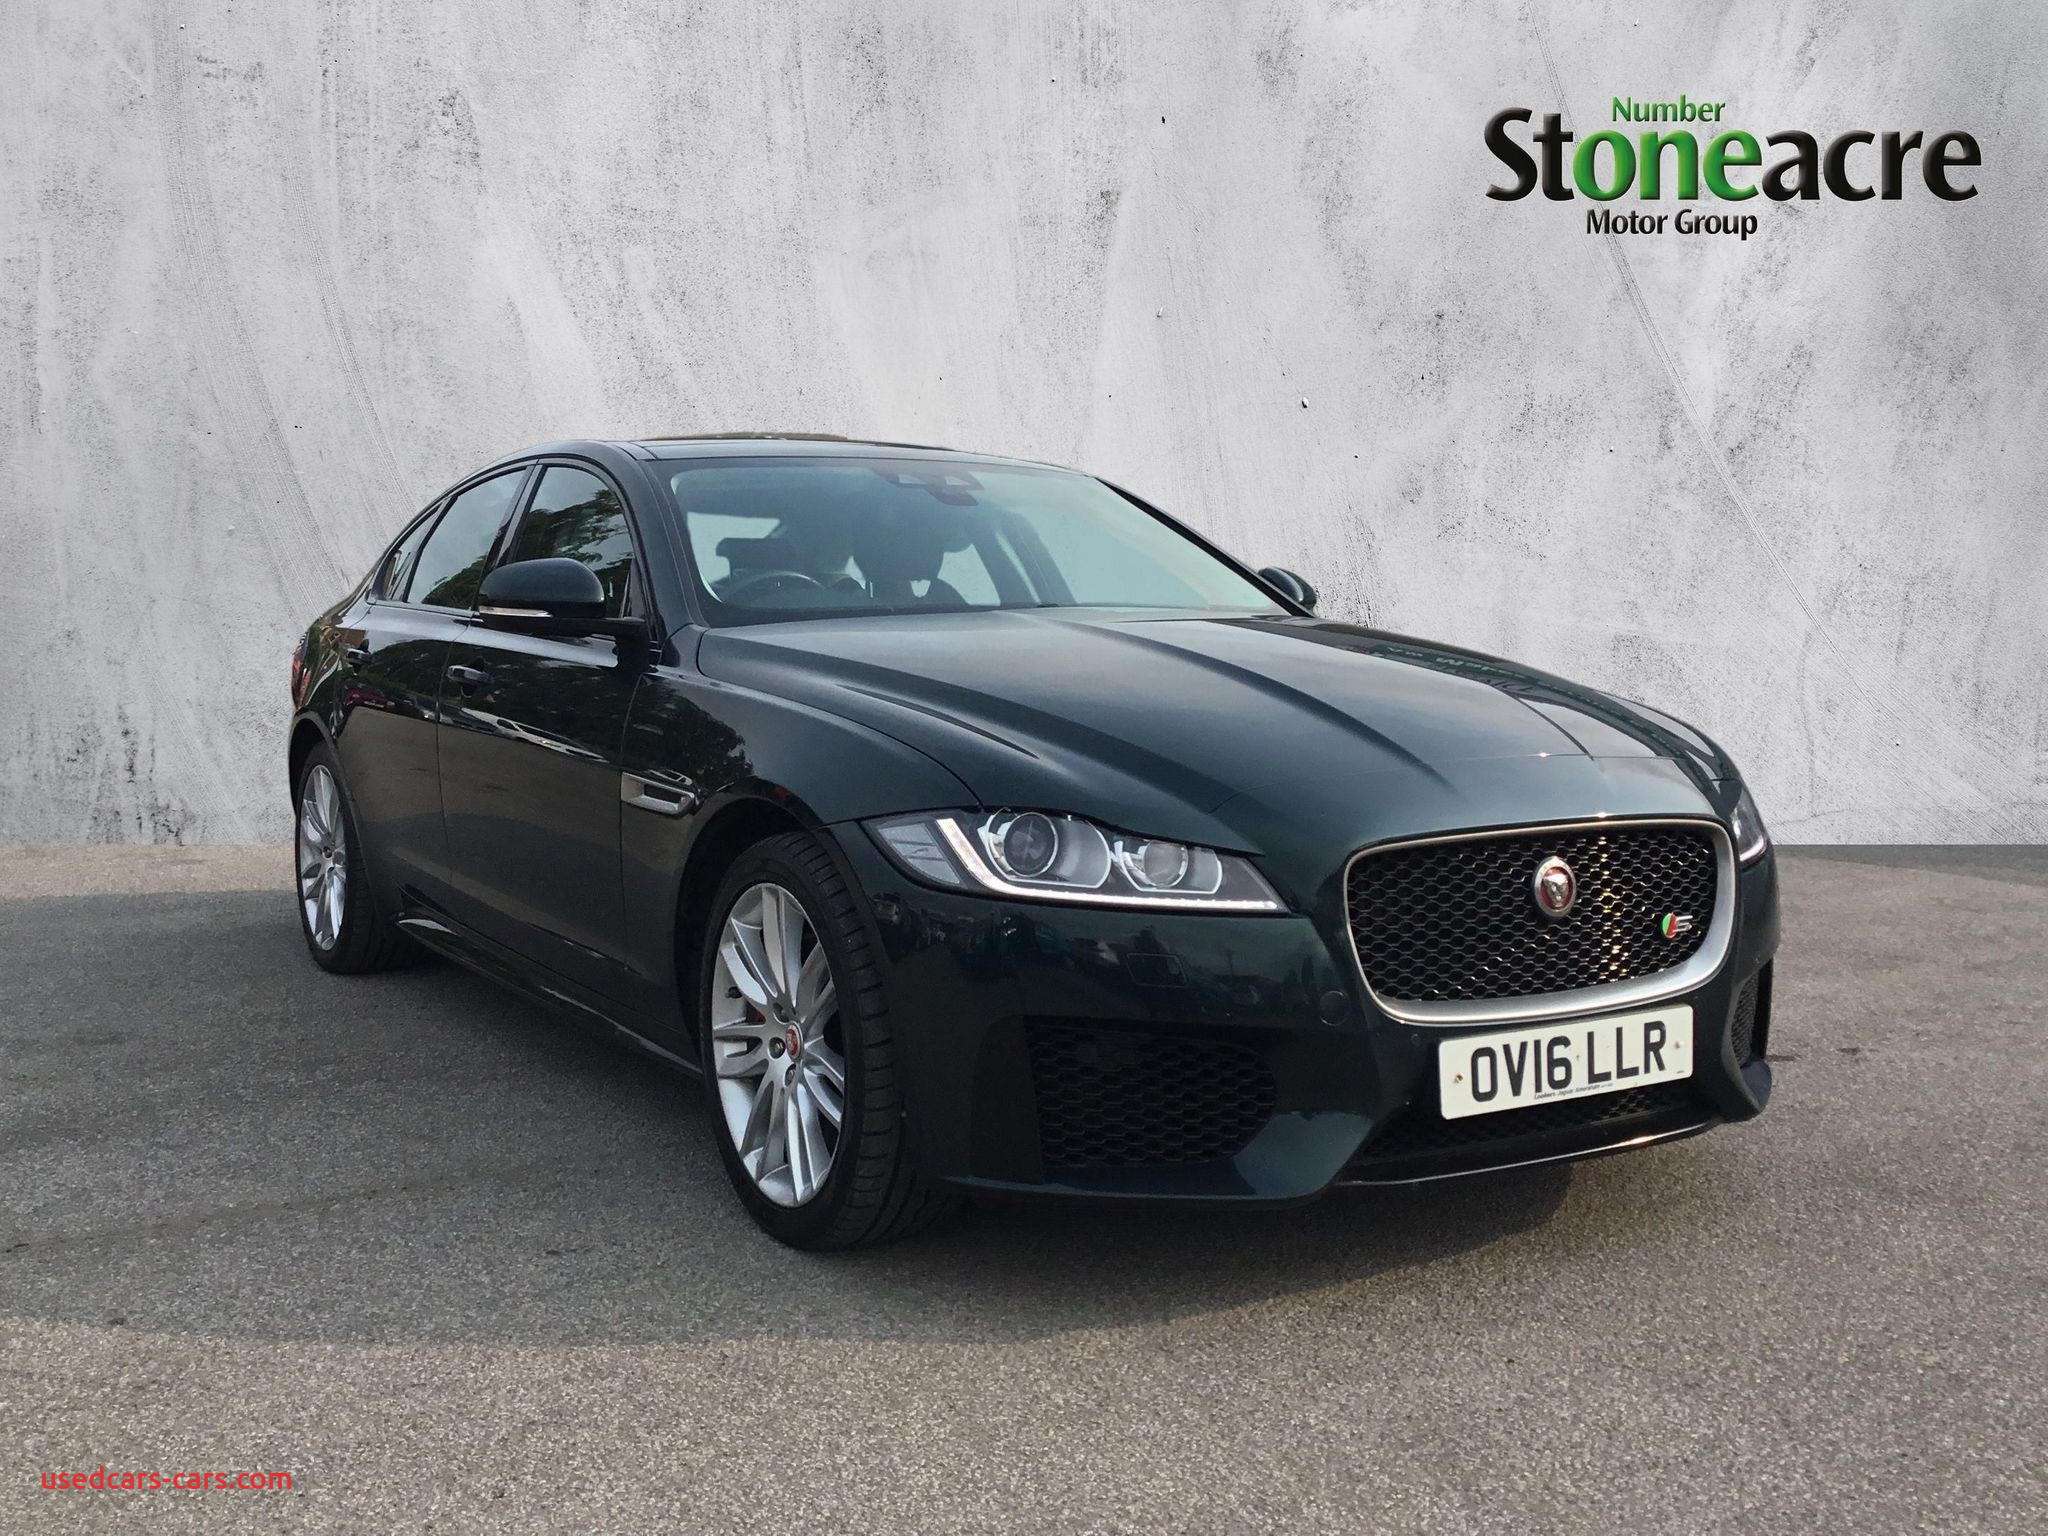 Used Cars for Sale with Low Mileage Awesome Used Jaguar Xf for Sale Stoneacre